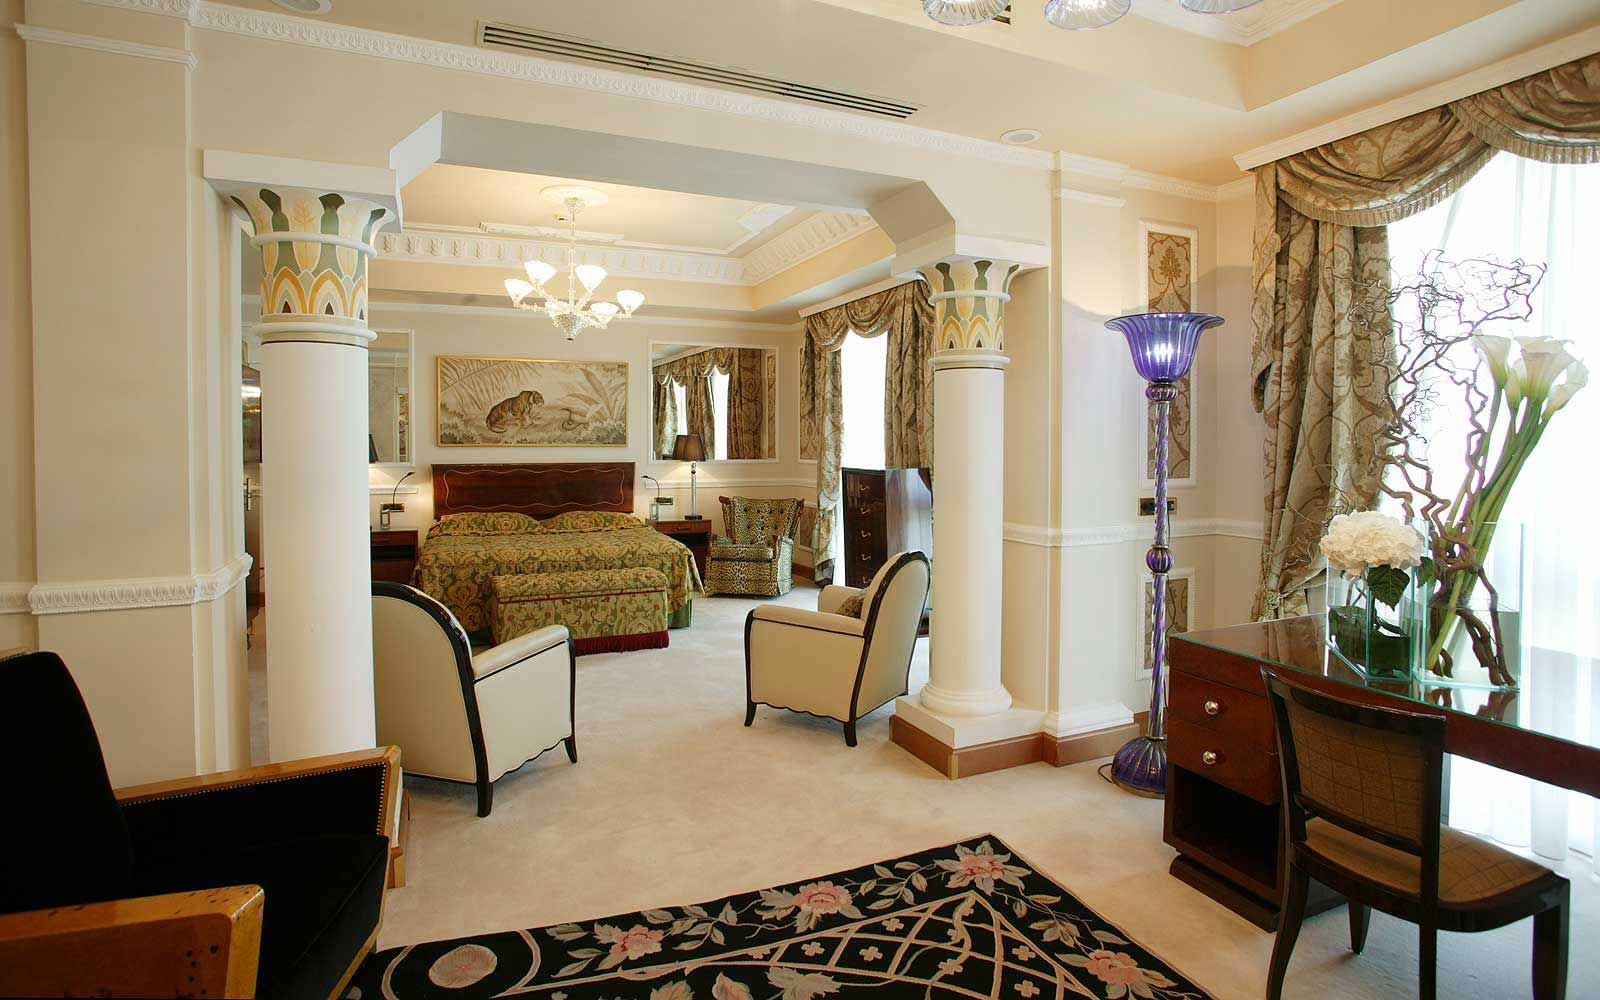 Carlton suite at Carlton Hotel Baglioni